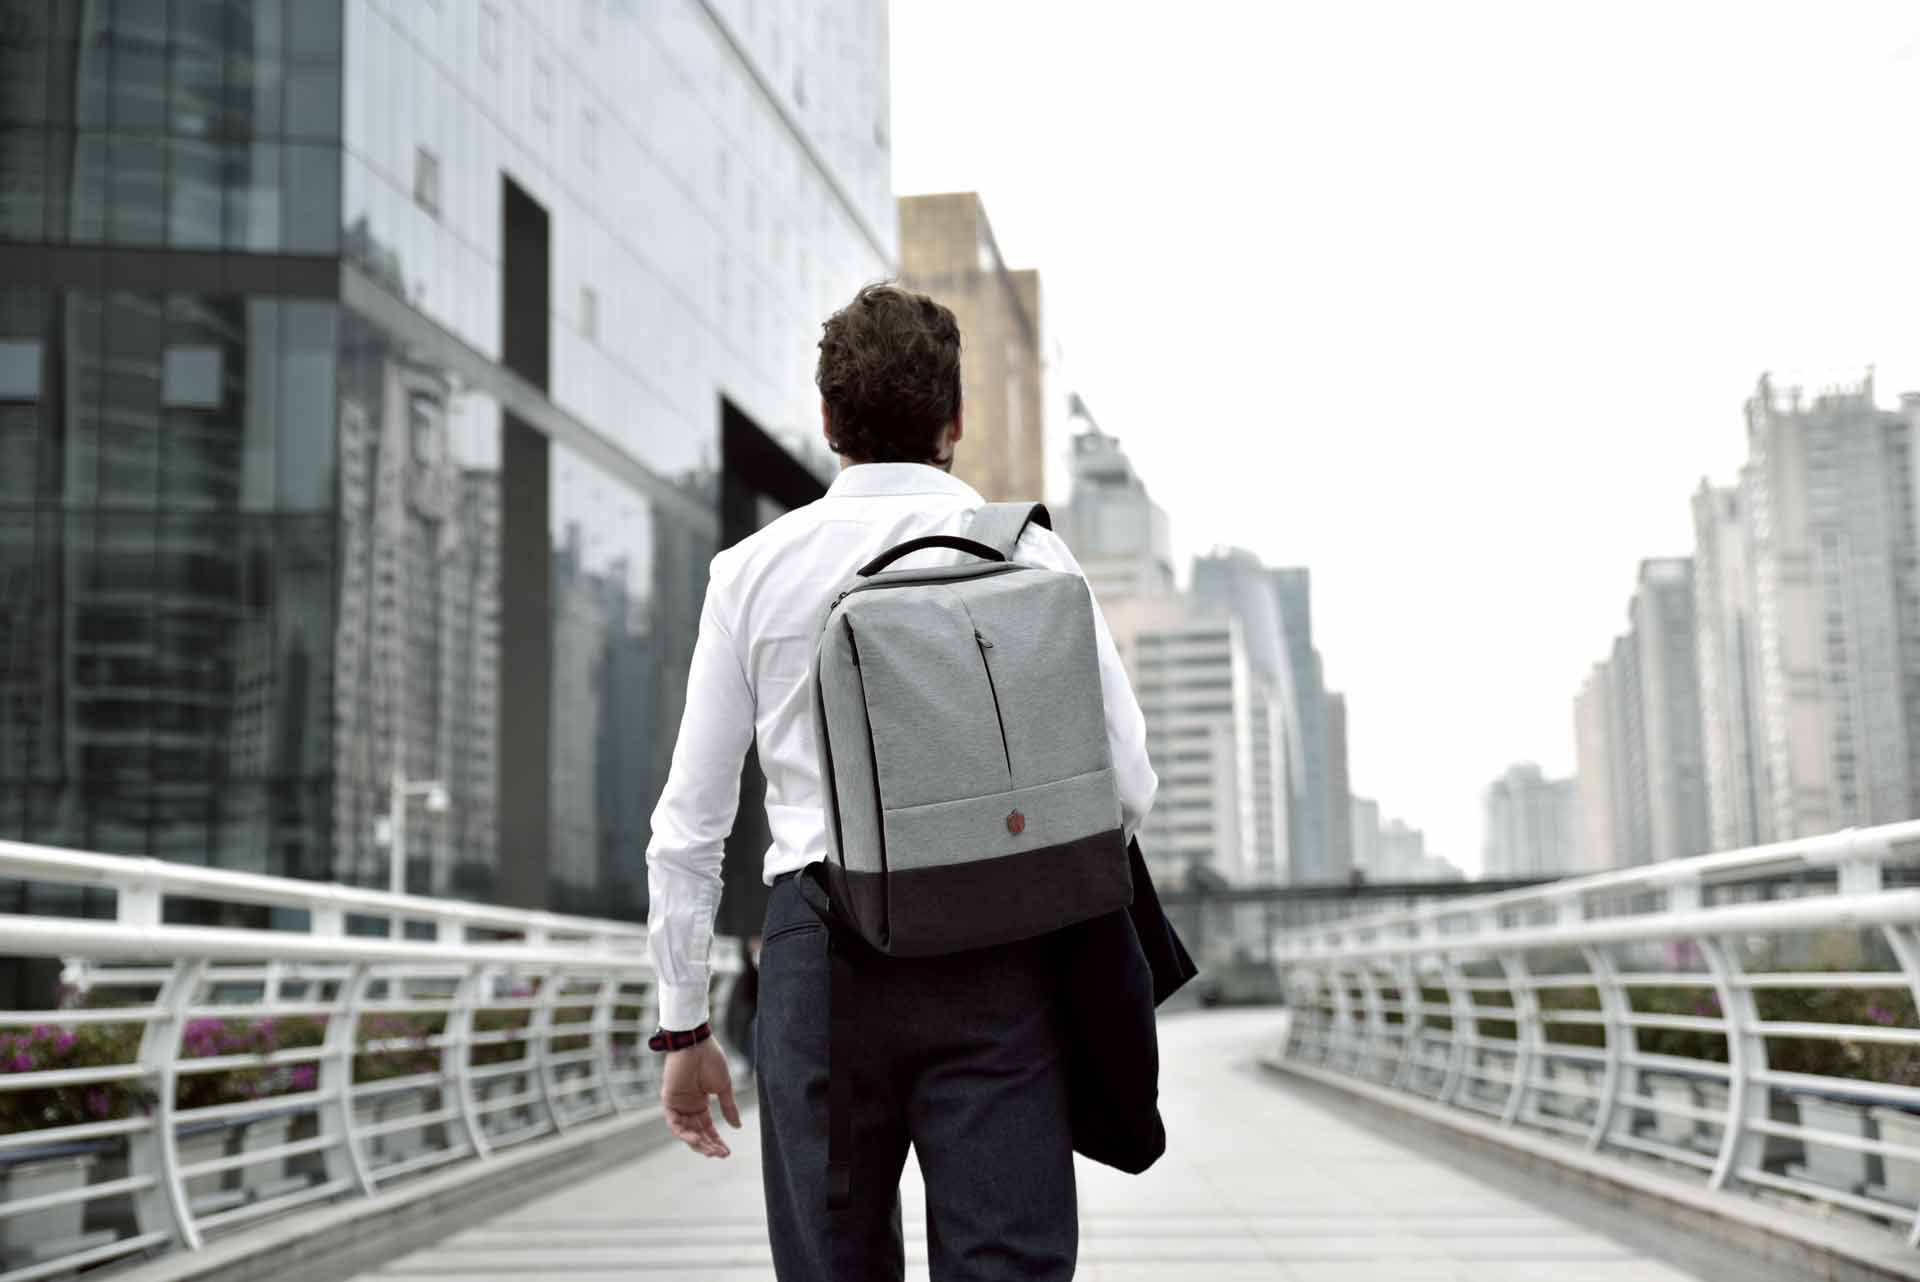 Krimcode Lifestyle Bag - Business Formal Backpack